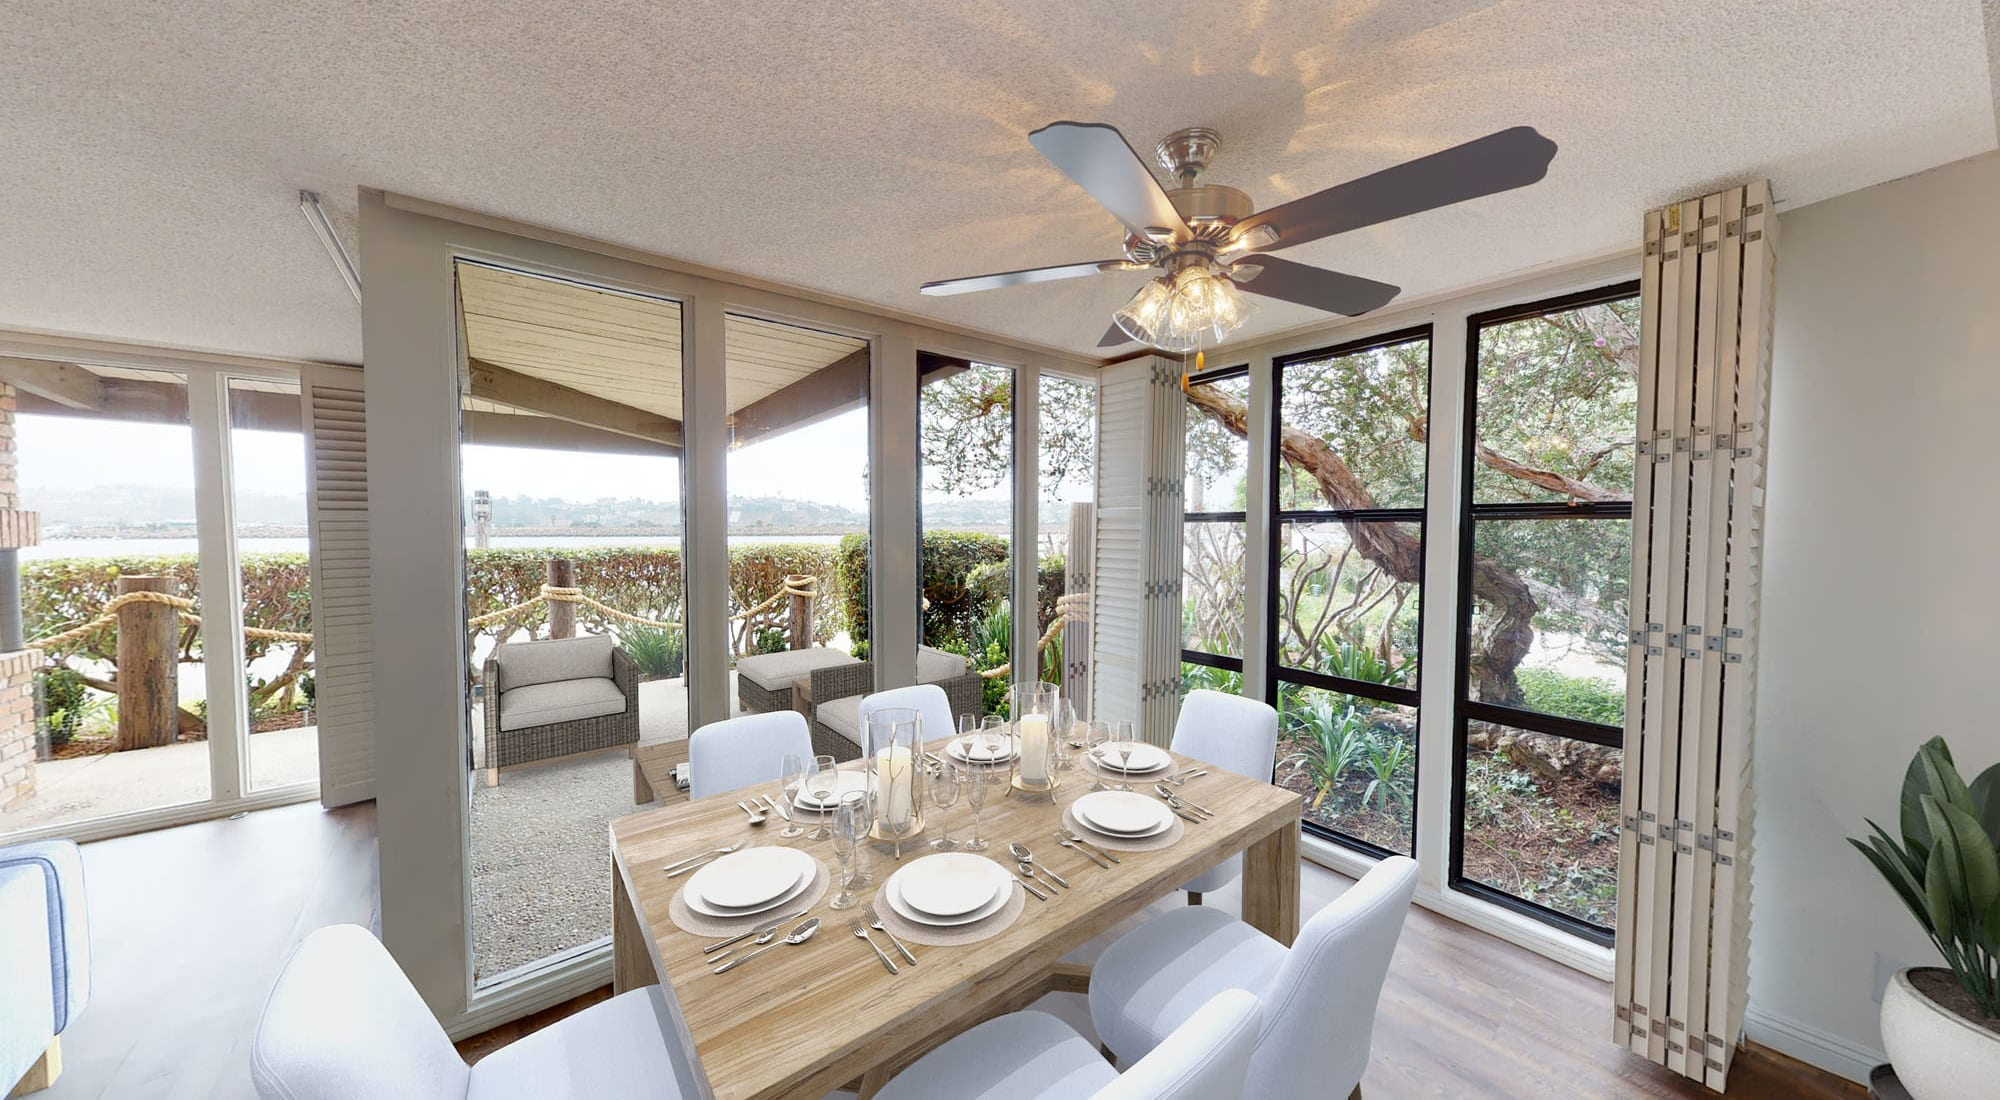 Ceiling fan and a large dining area in a model home at Primary bedroom with large bay windows and a walk-in closet in a model home at Mariners Village in Marina del Rey, California